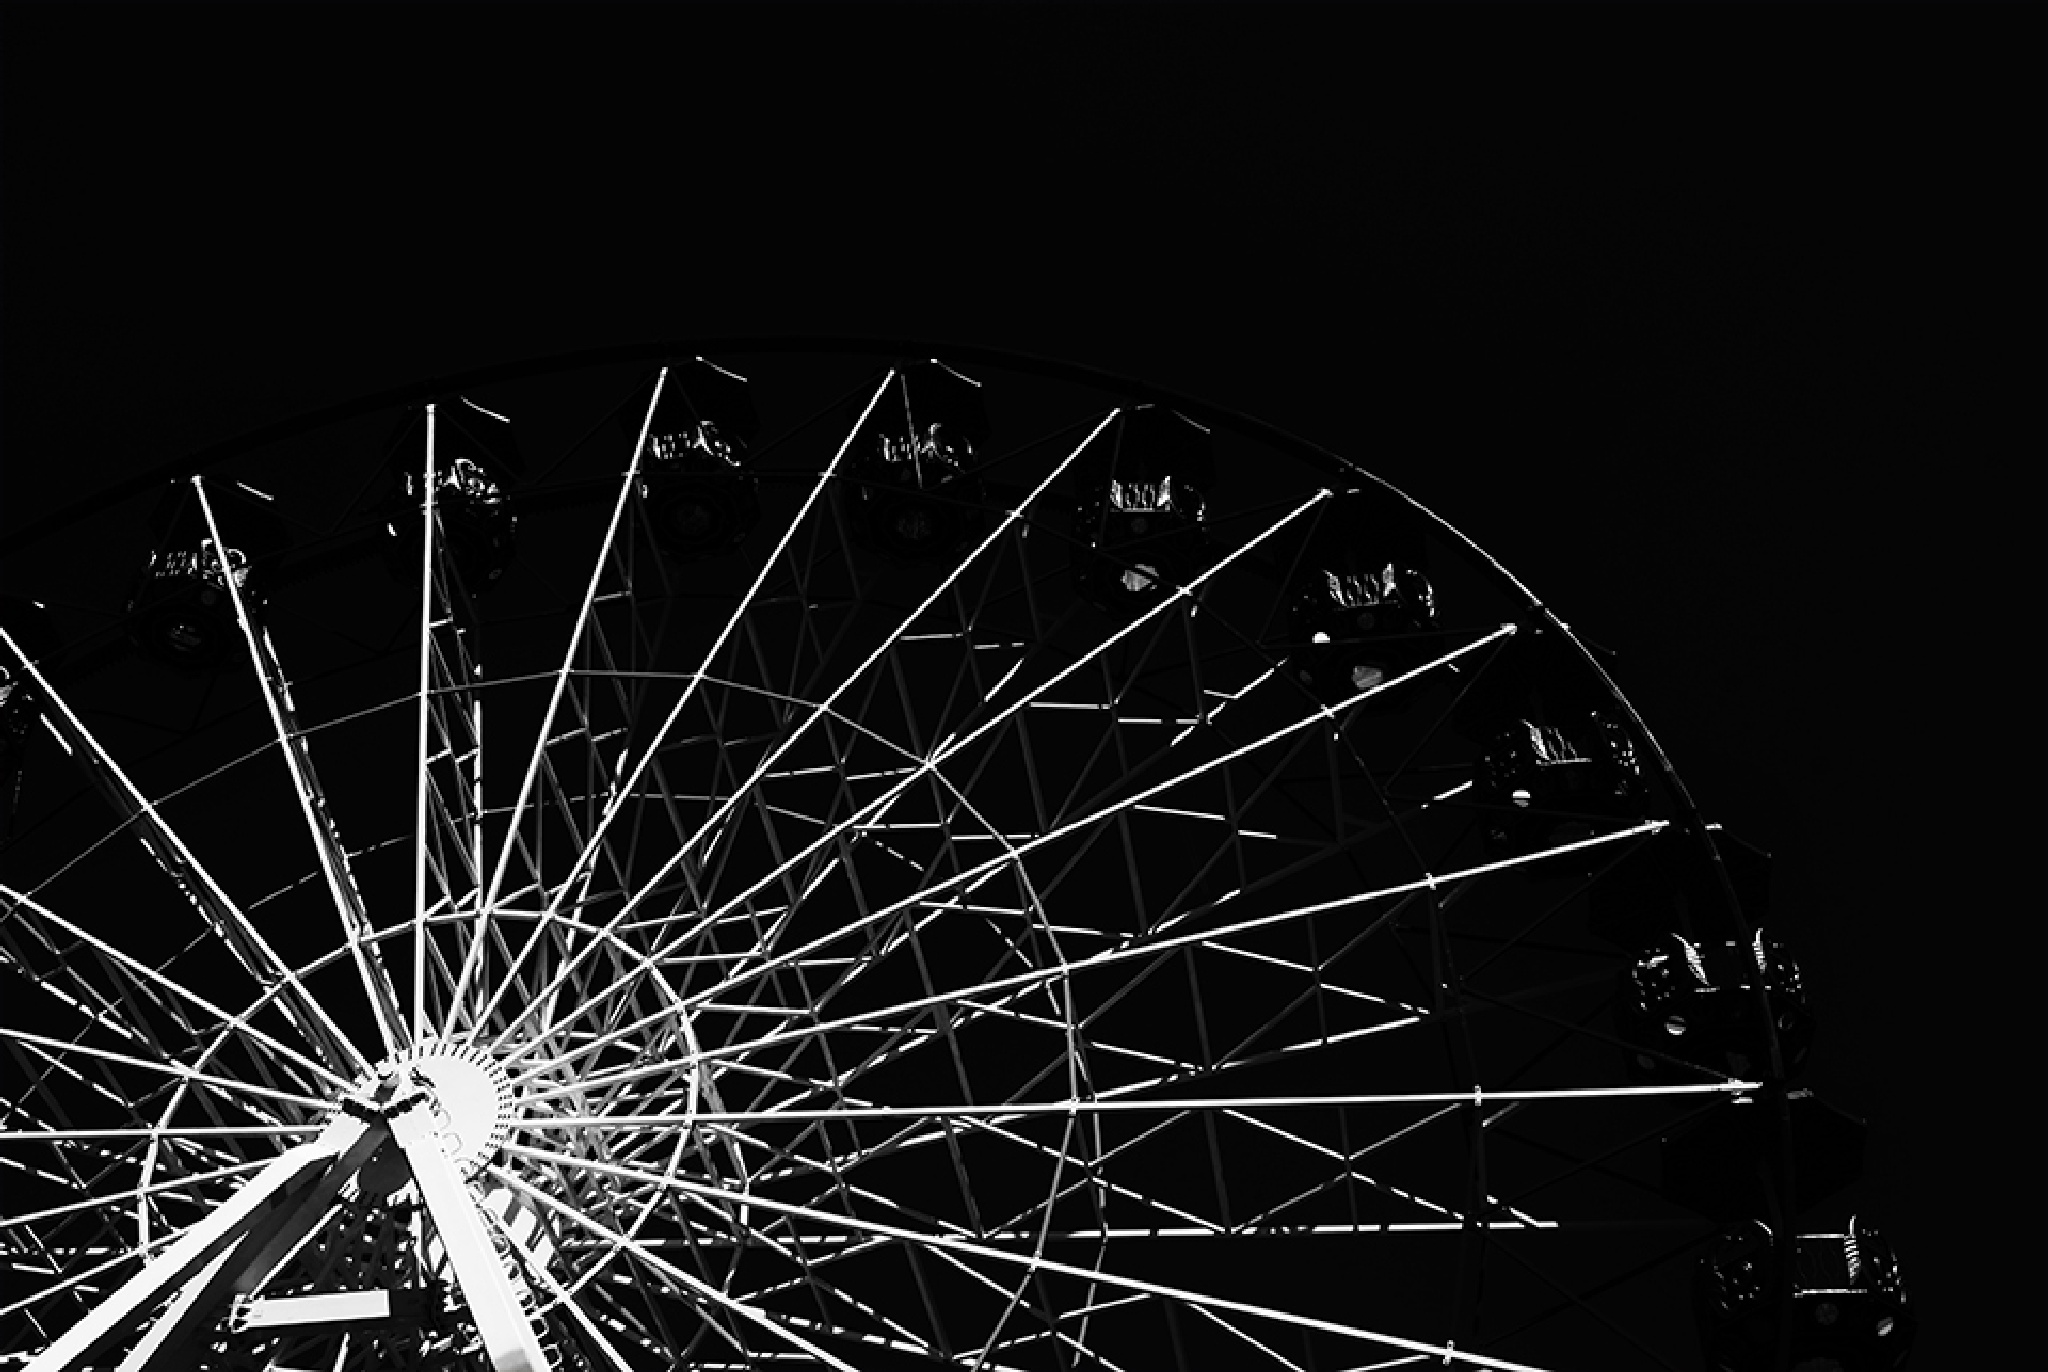 Ferris wheel (Black And White) by Mithat Aker